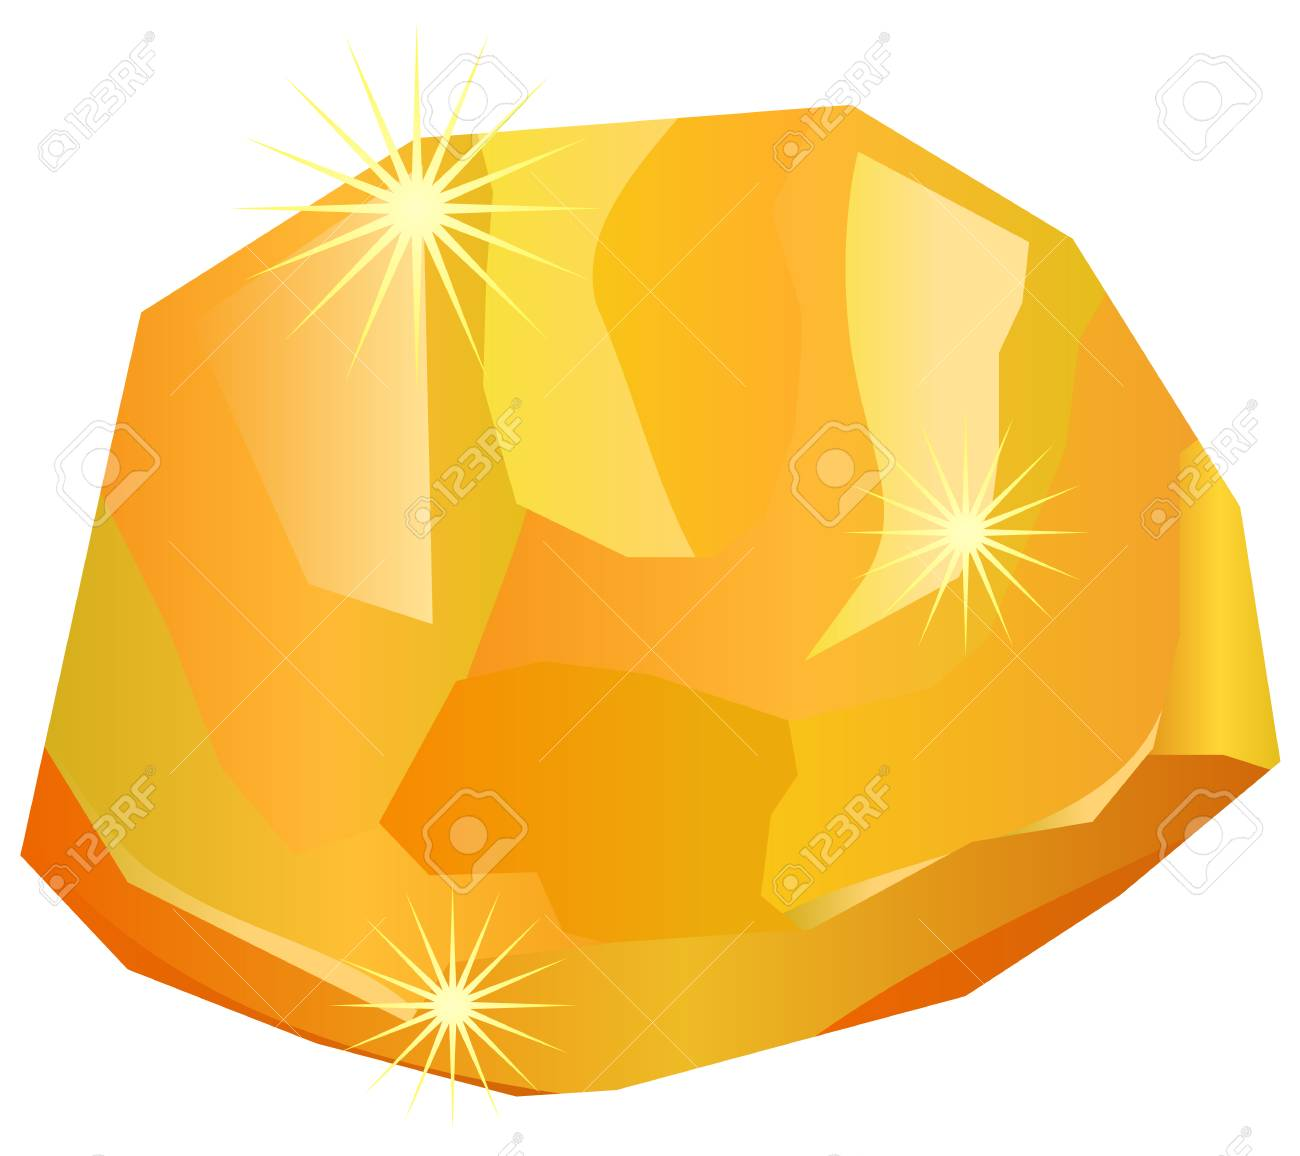 Gold nugget clipart 2 » Clipart Station.